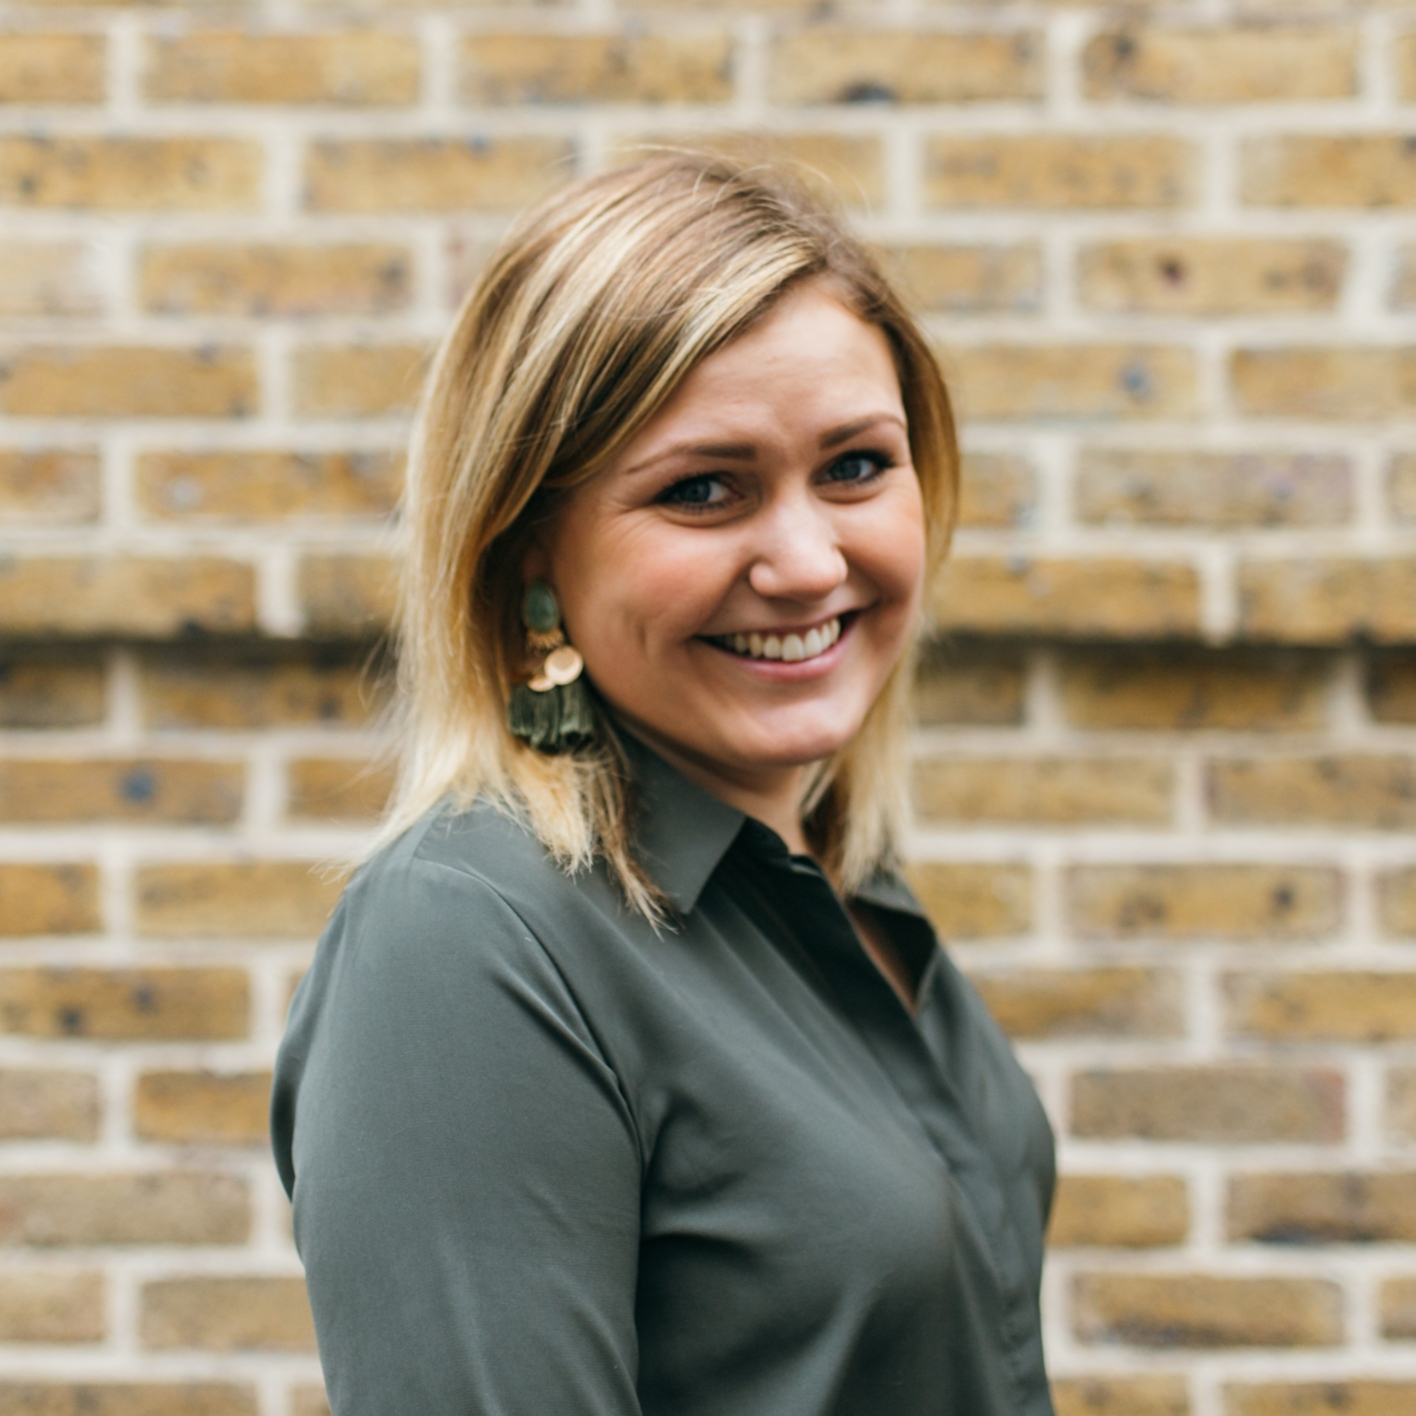 MEET THE TEAM - Discover more about our Dress to Impress Rental Service with Senior Interior Designer, Hannah.